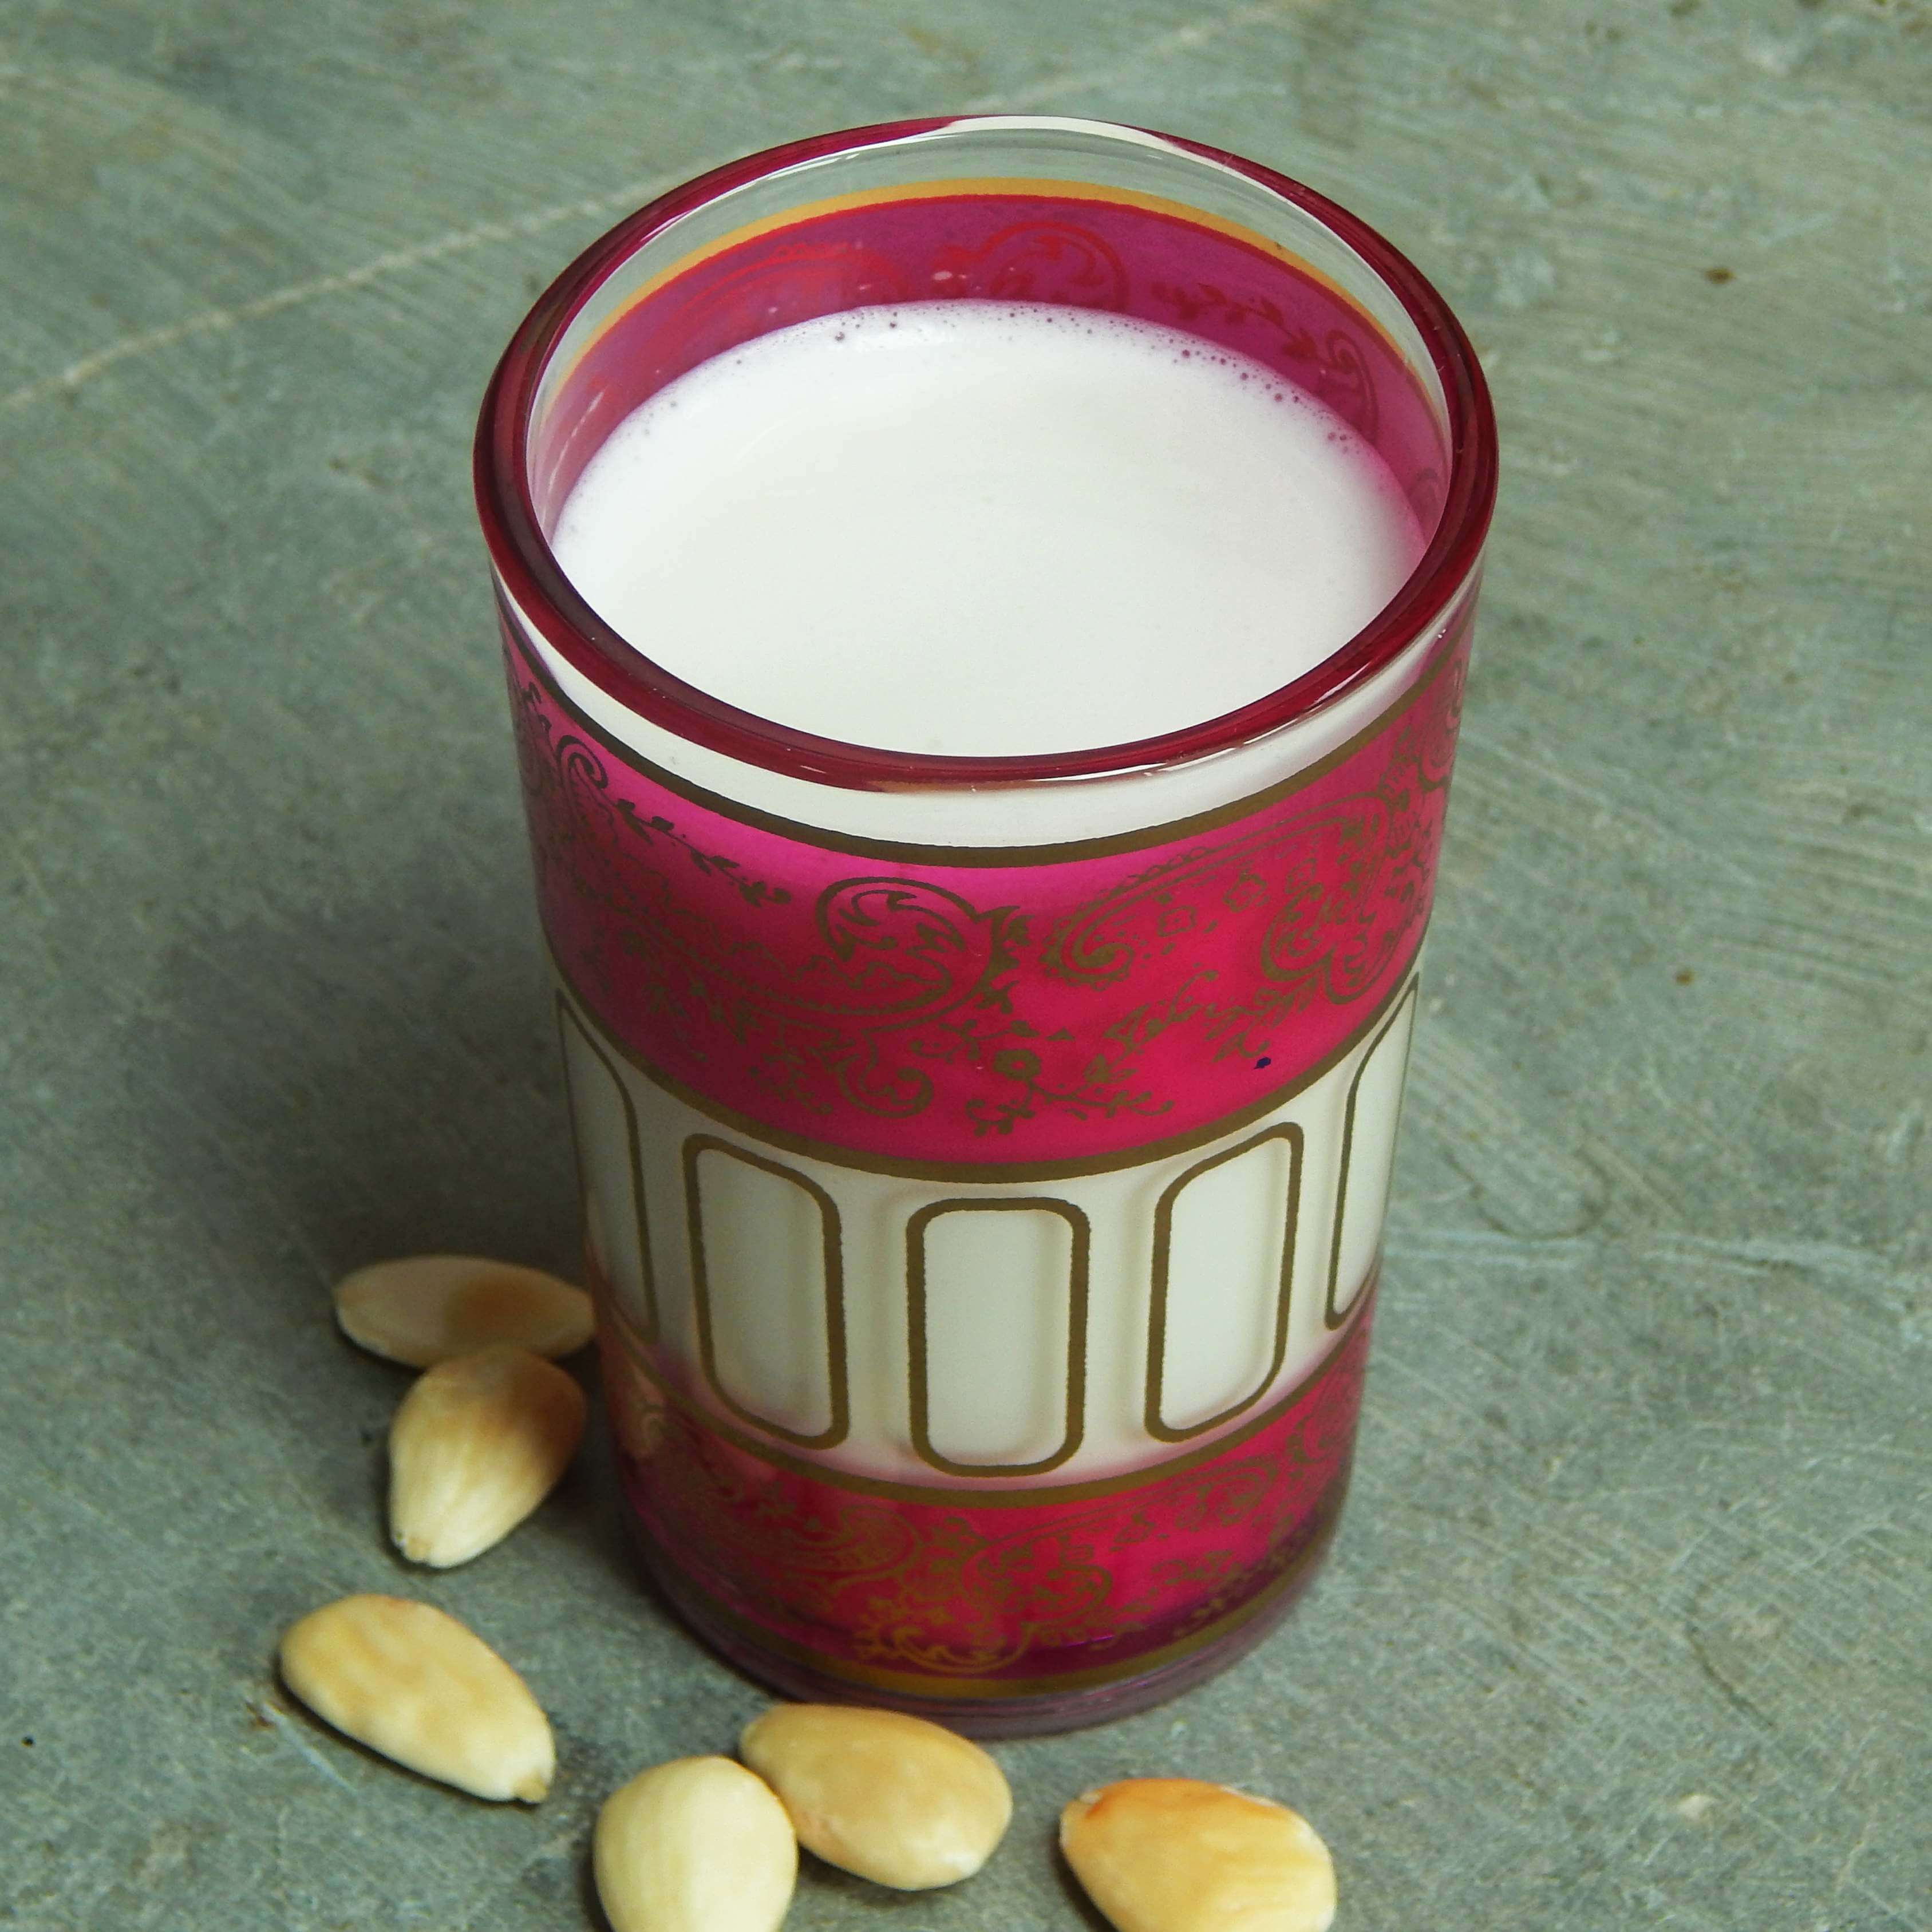 Almond milk in a glass with scattered almonds all around